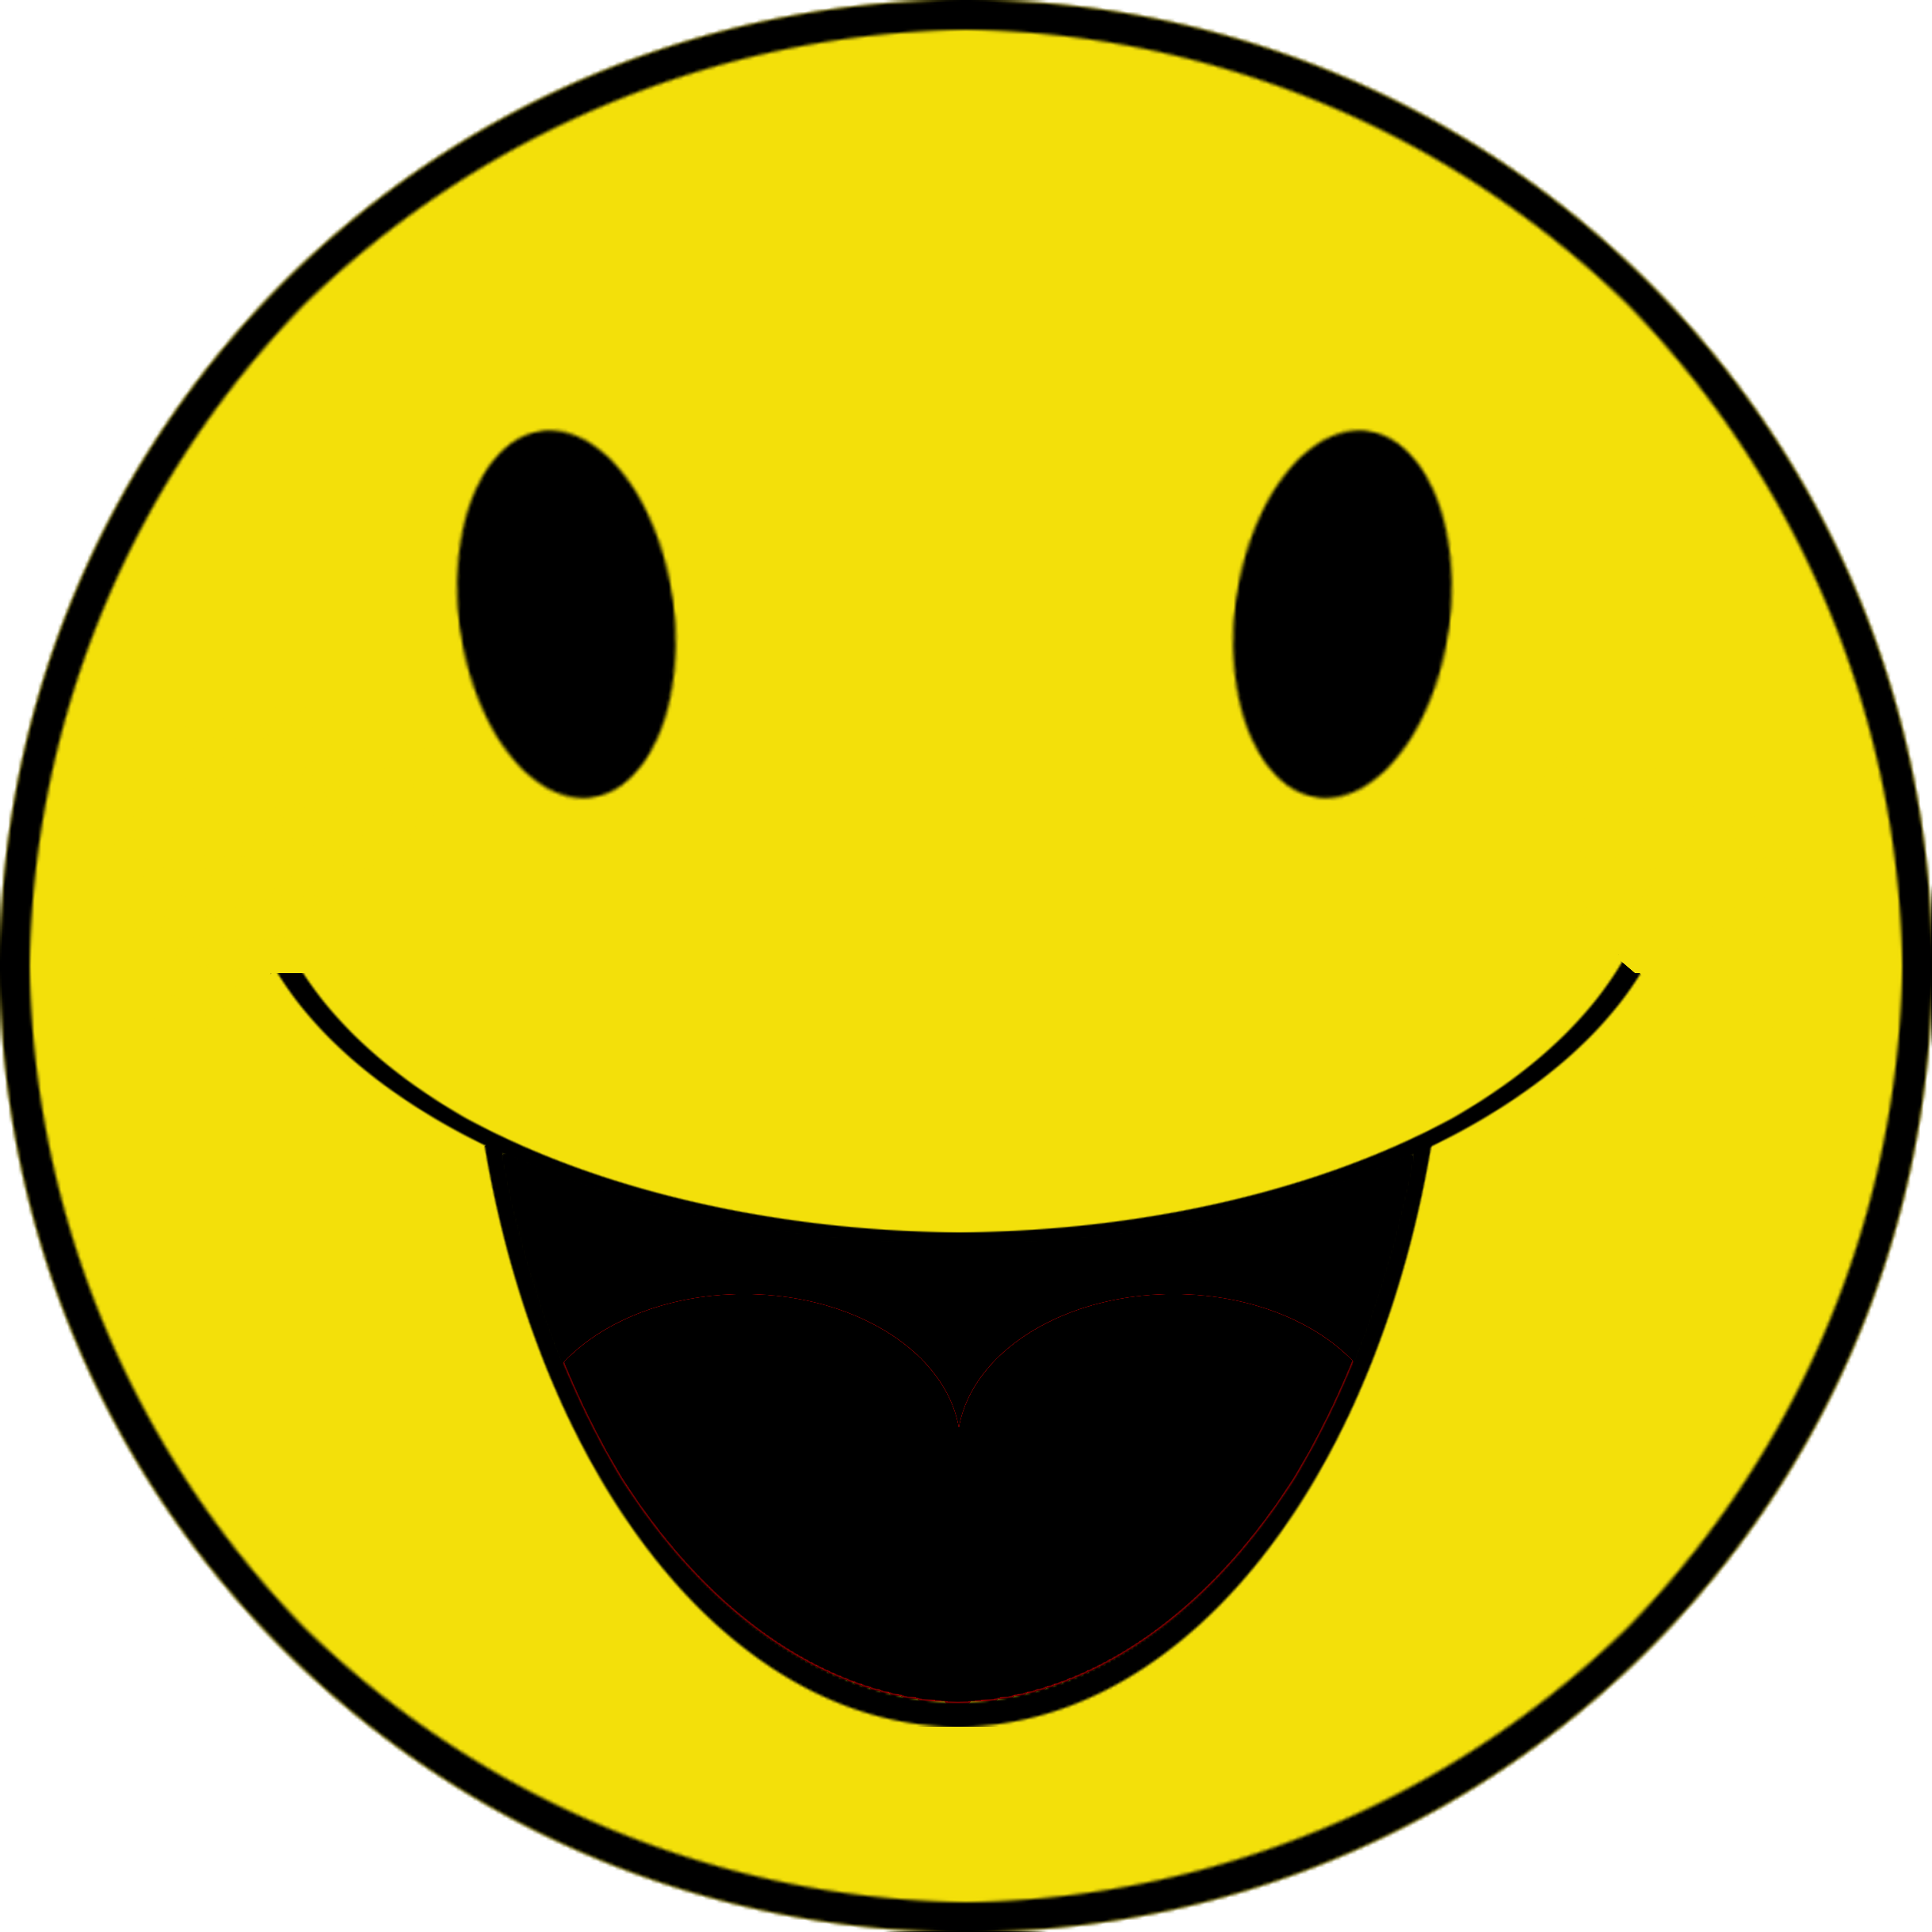 Smiley Face Png - Smiley PNG